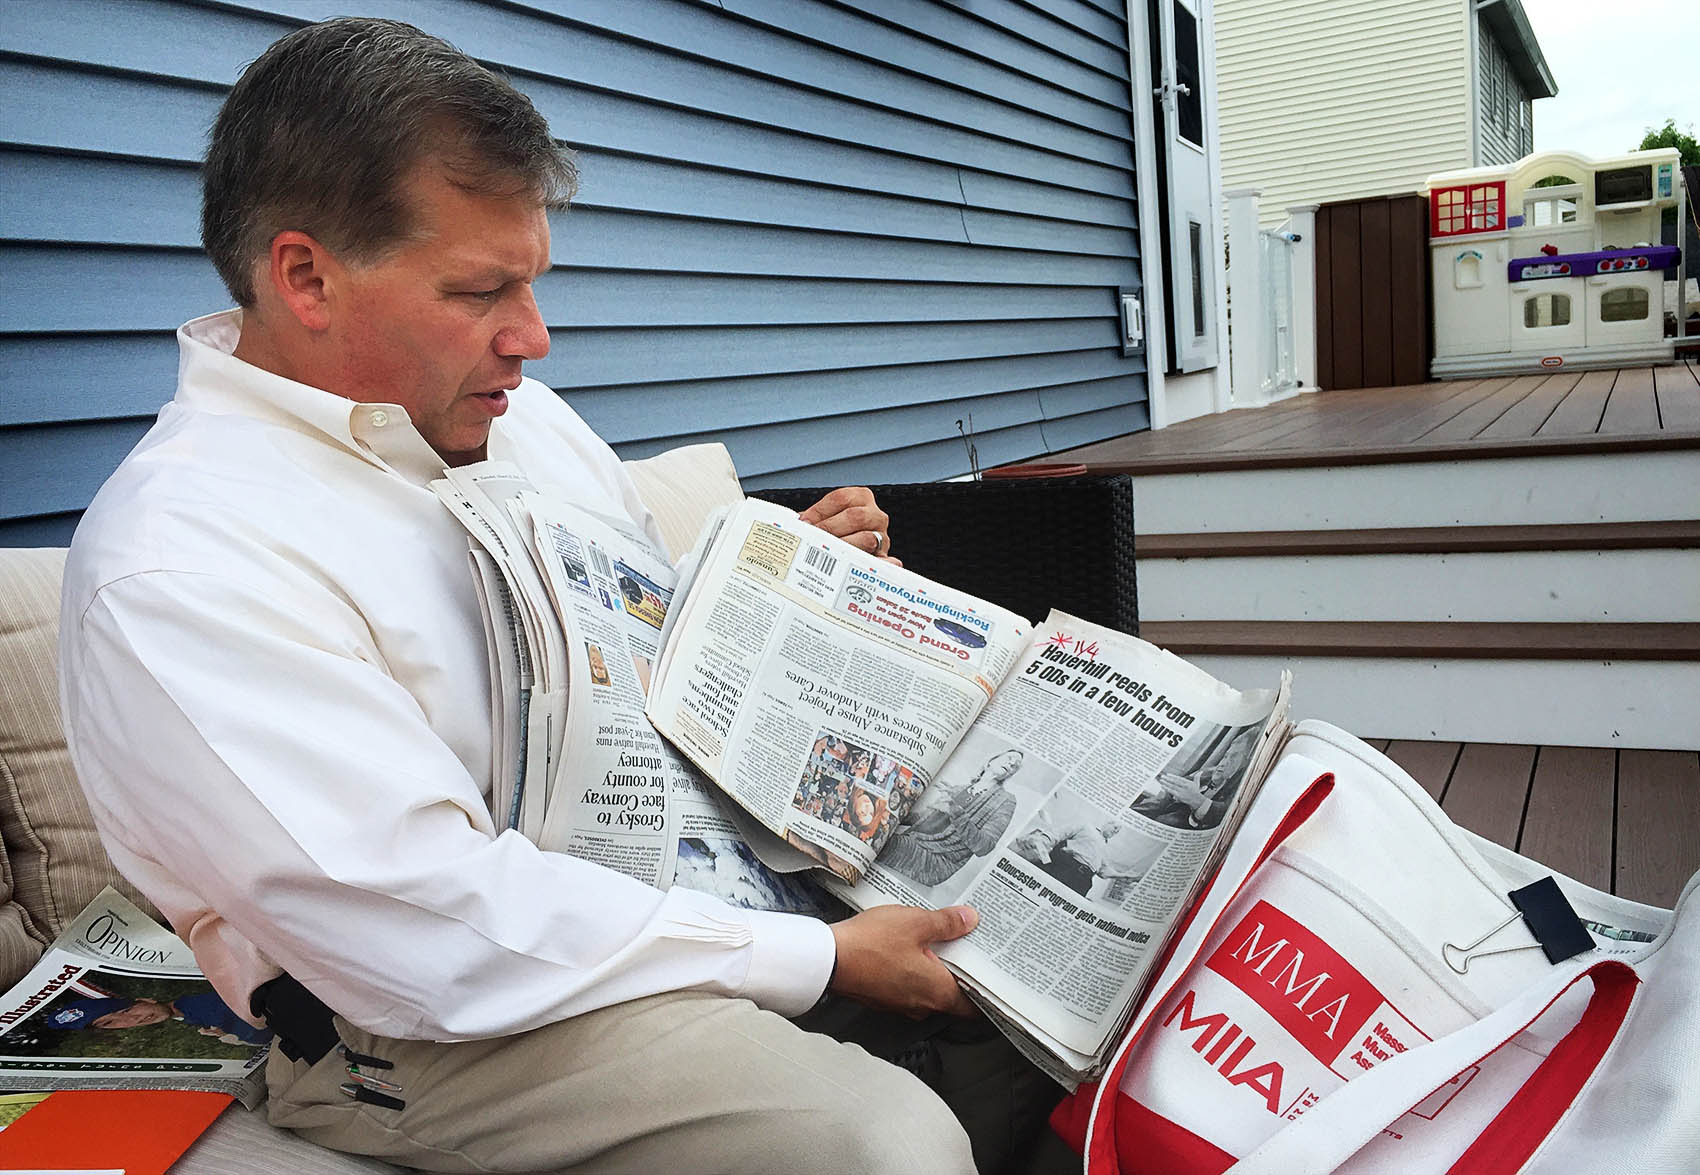 At his home in Haverhill, Colin LePage leafs through newspapers he shows to middle-schoolers to educate them about the dangers of drugs. (Martha Bebinger/WBUR)